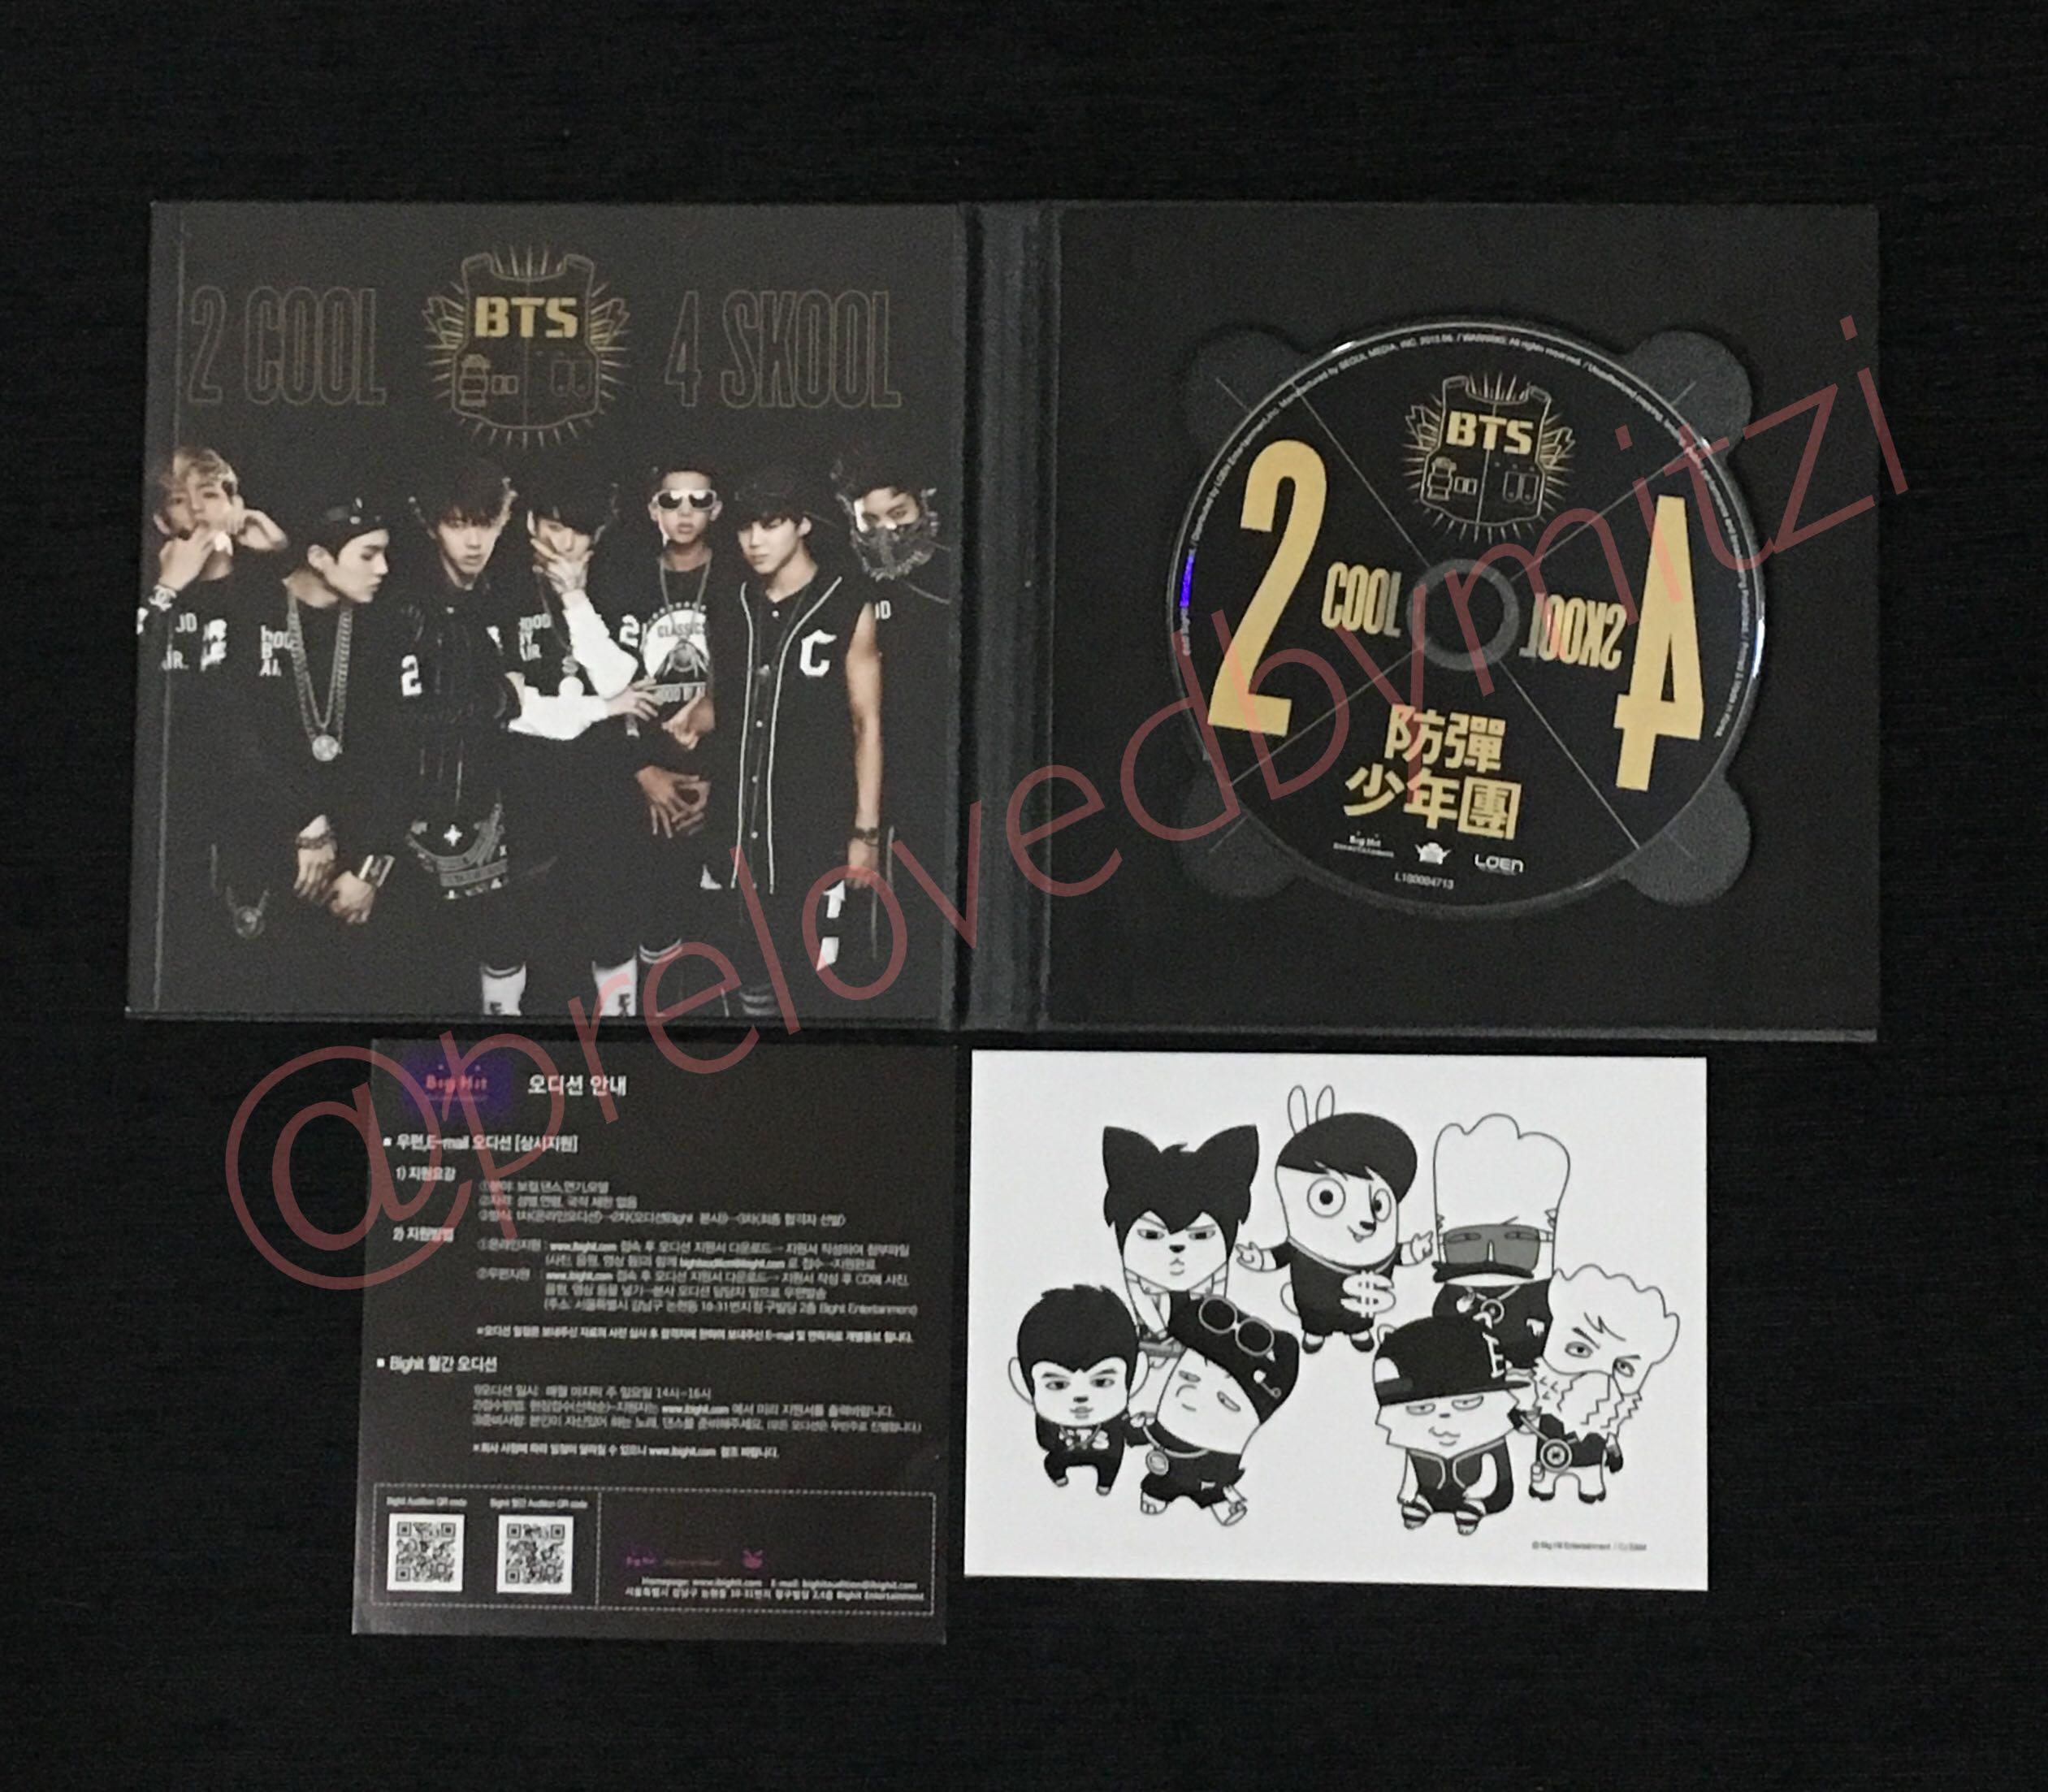 BTS 2 COOL 4 SKOOL ALBUM NO PC